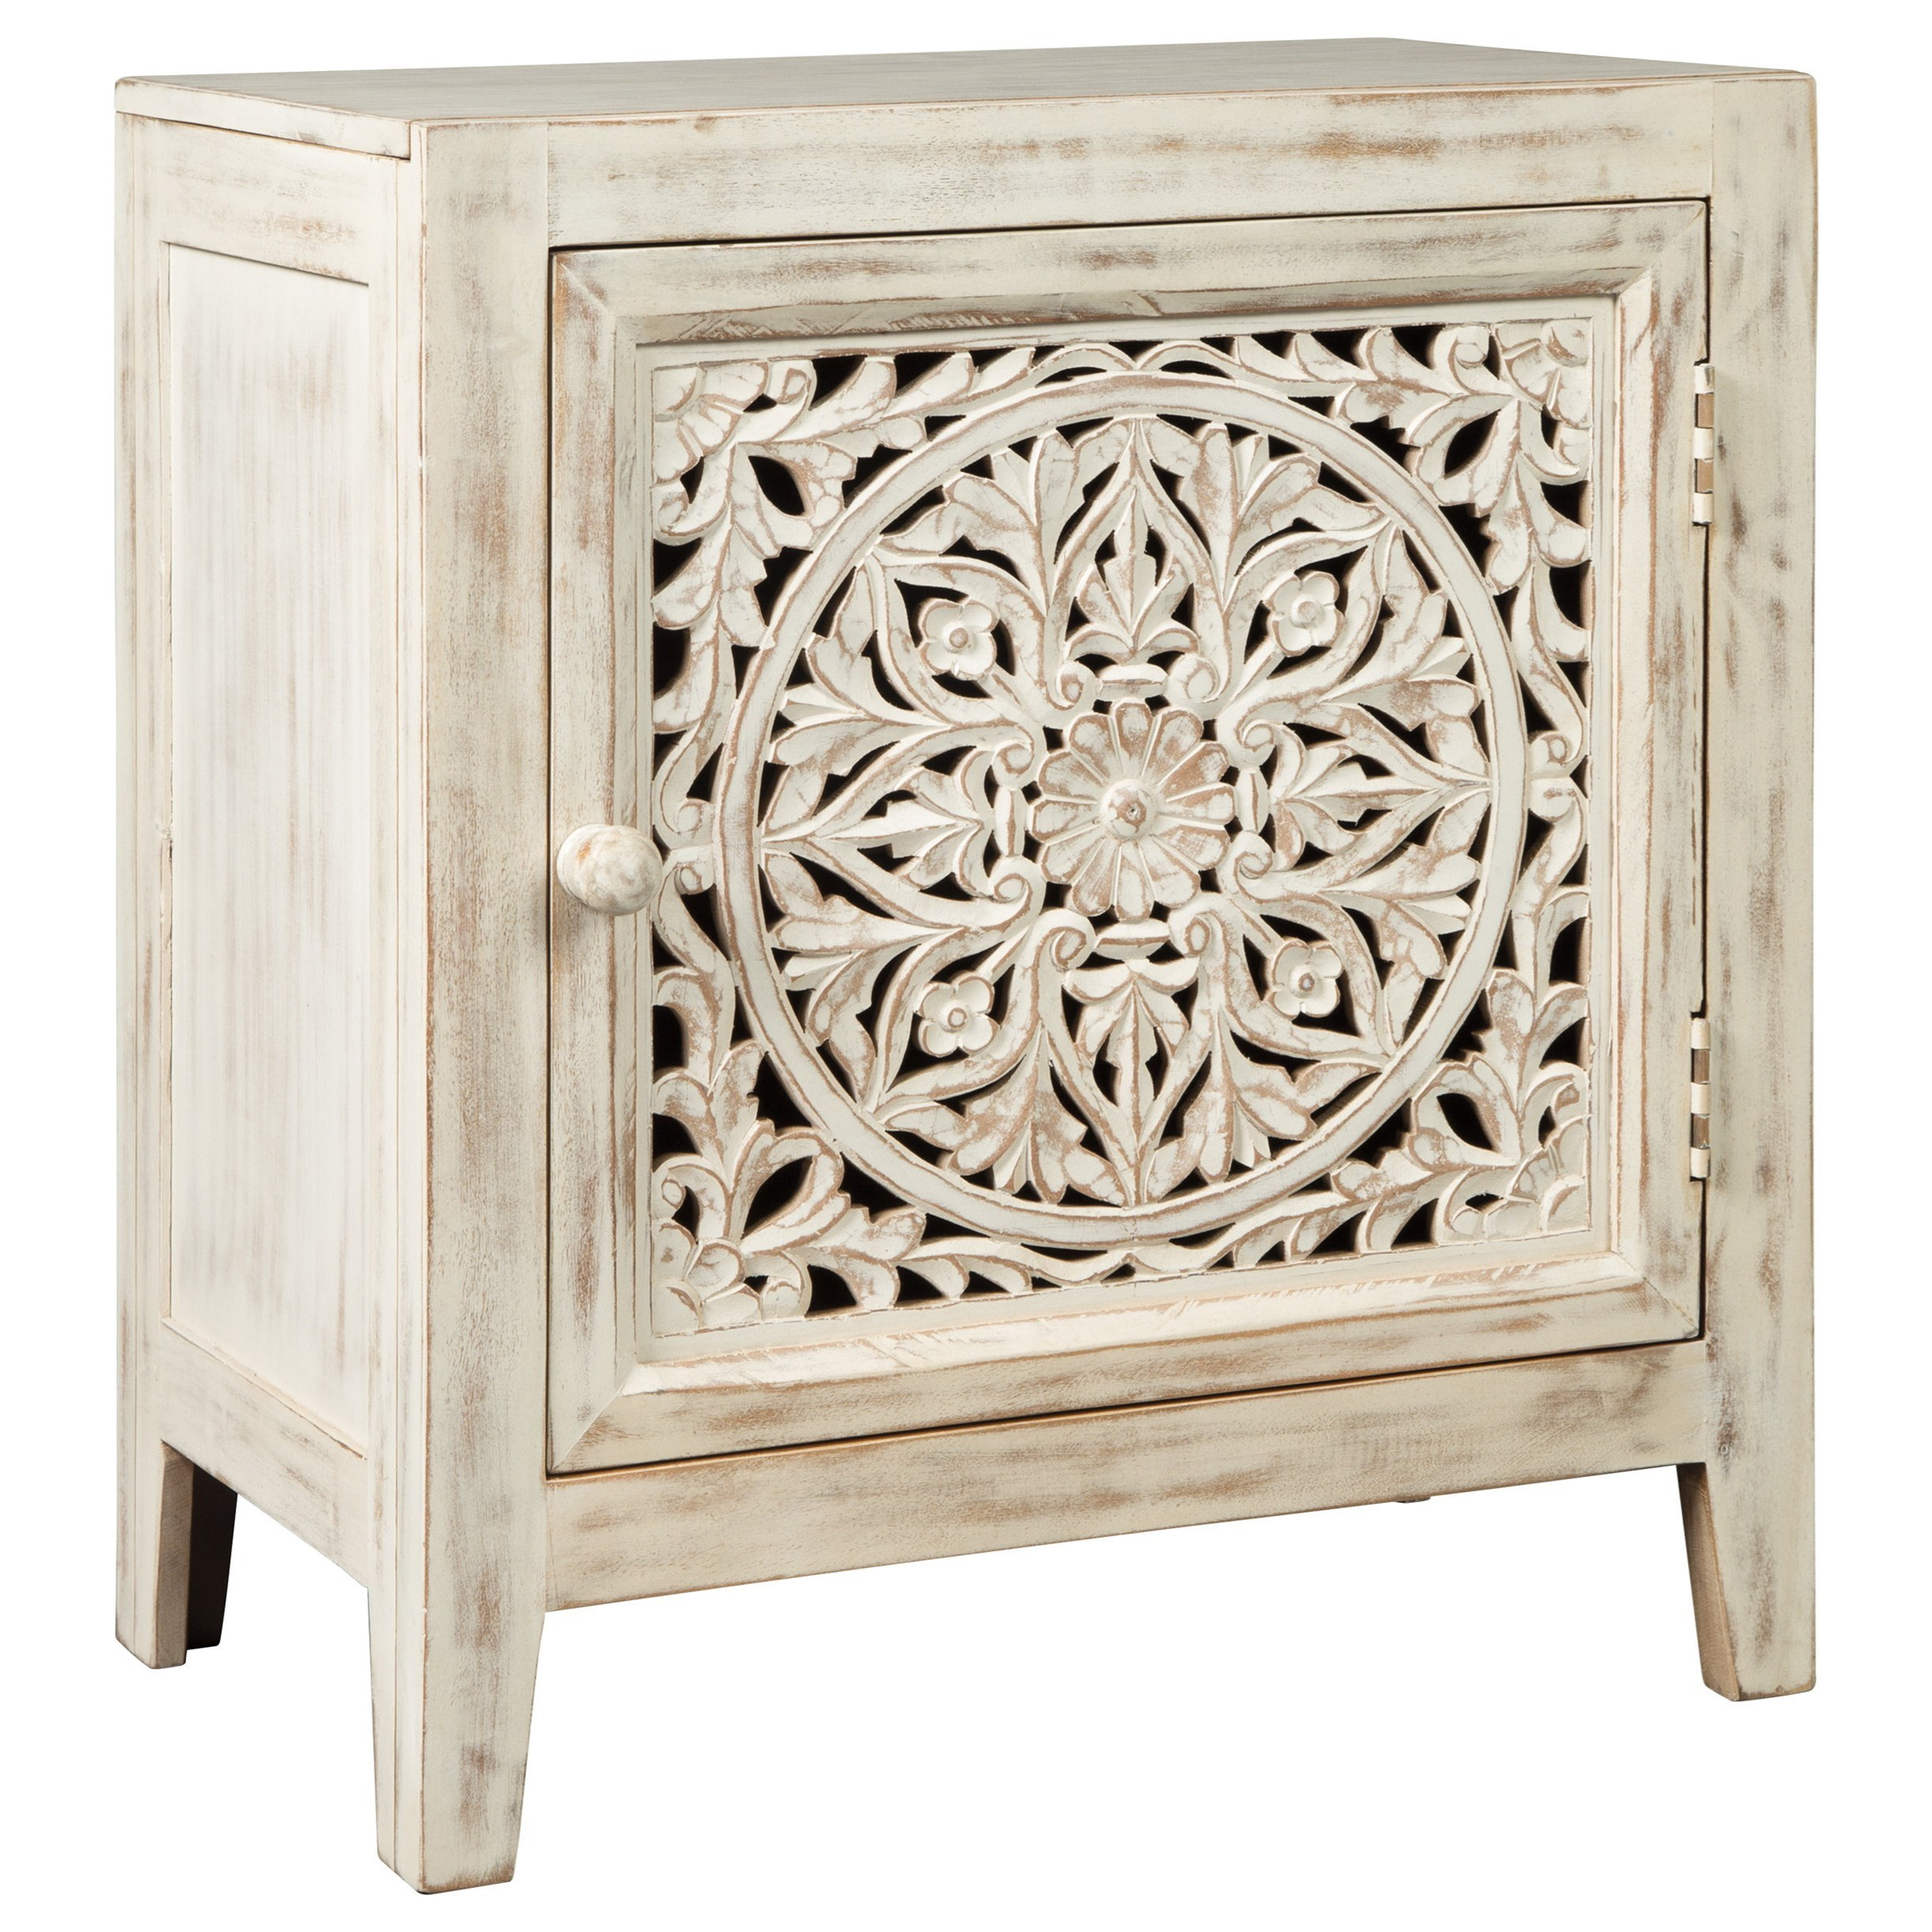 Fossil Ridge Accent Cabinet by Signature Design by Ashley at Zak's Warehouse Clearance Center